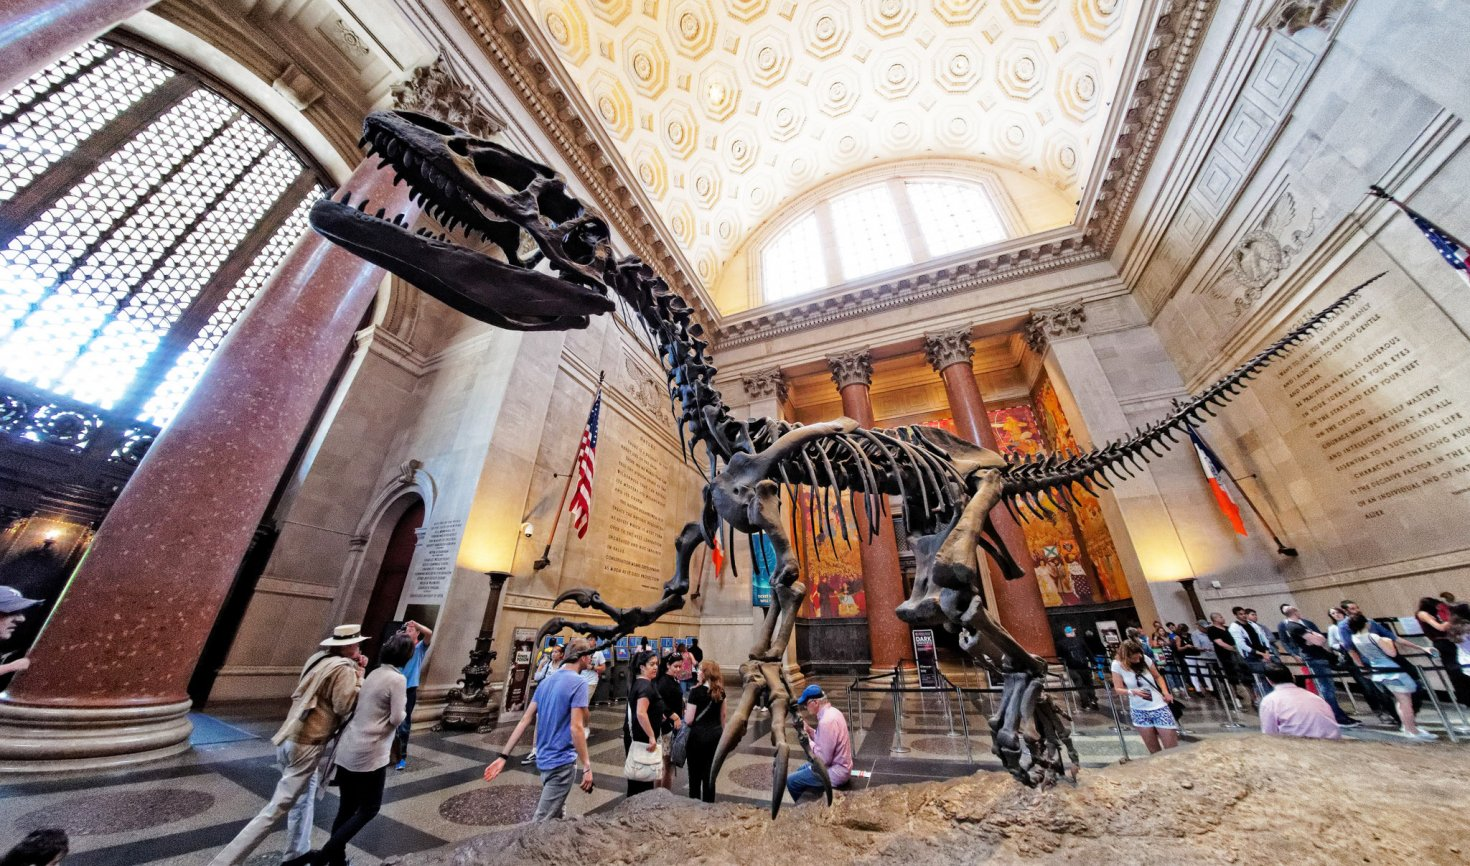 When Is The American Museum Of Natural History Open